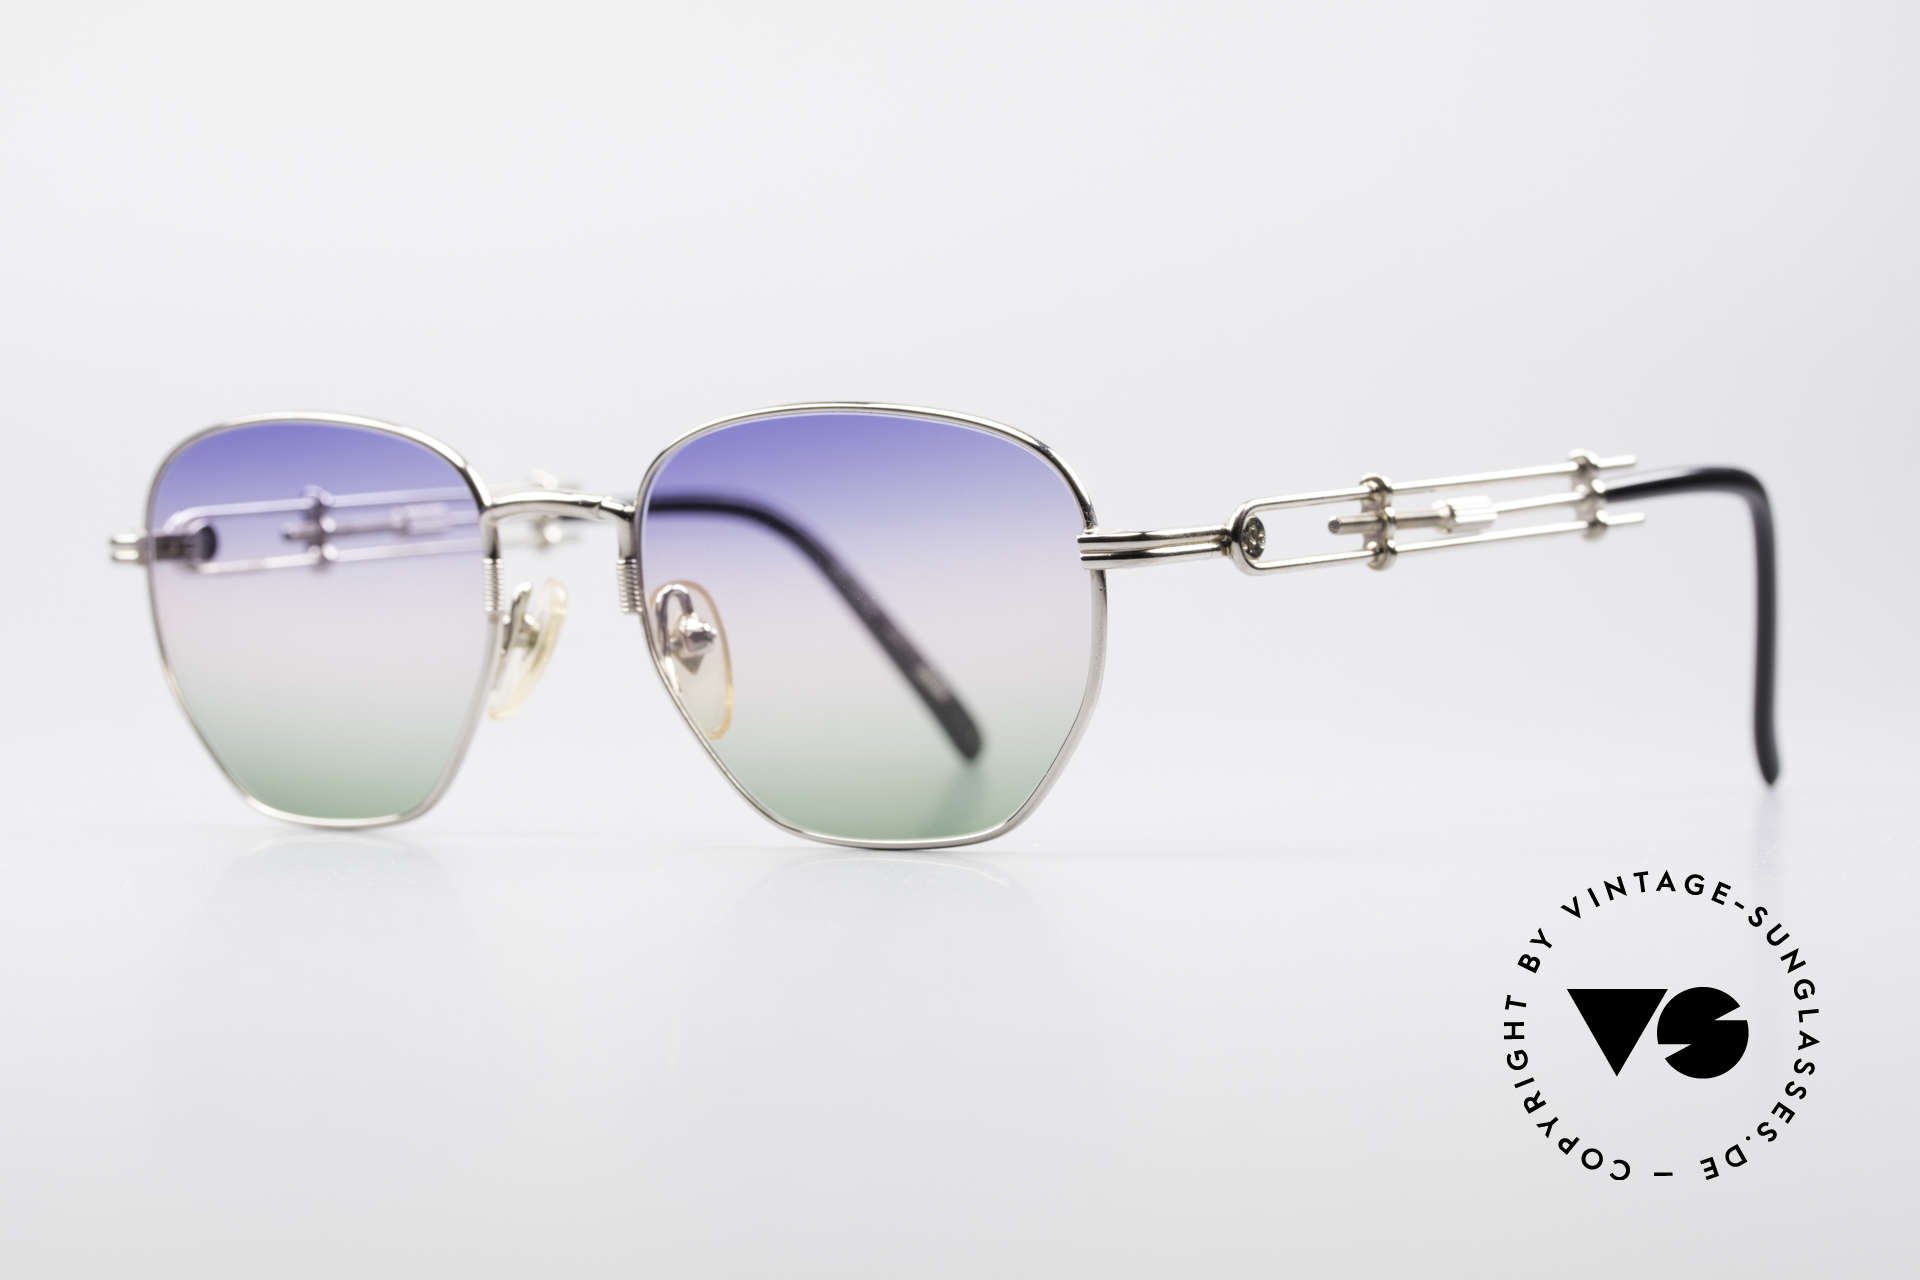 Jean Paul Gaultier 55-4174 Adjustable Vintage Frame, ultra rare TRICOLOR customized GRADIENT lenses, Made for Men and Women